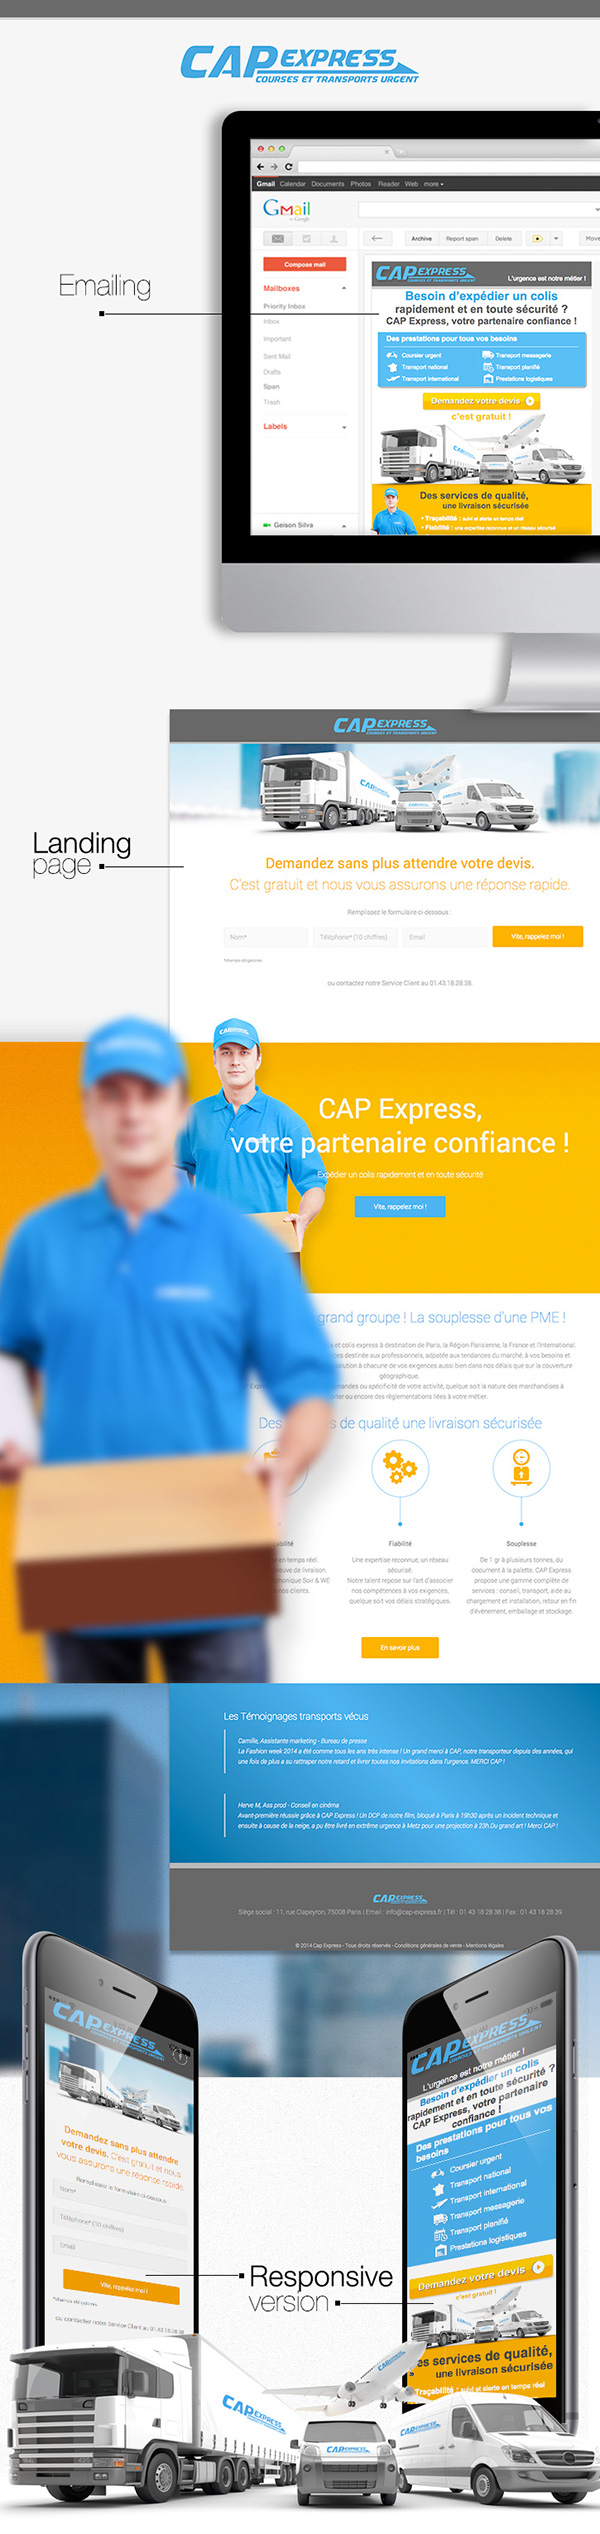 emailing landing page Responsive